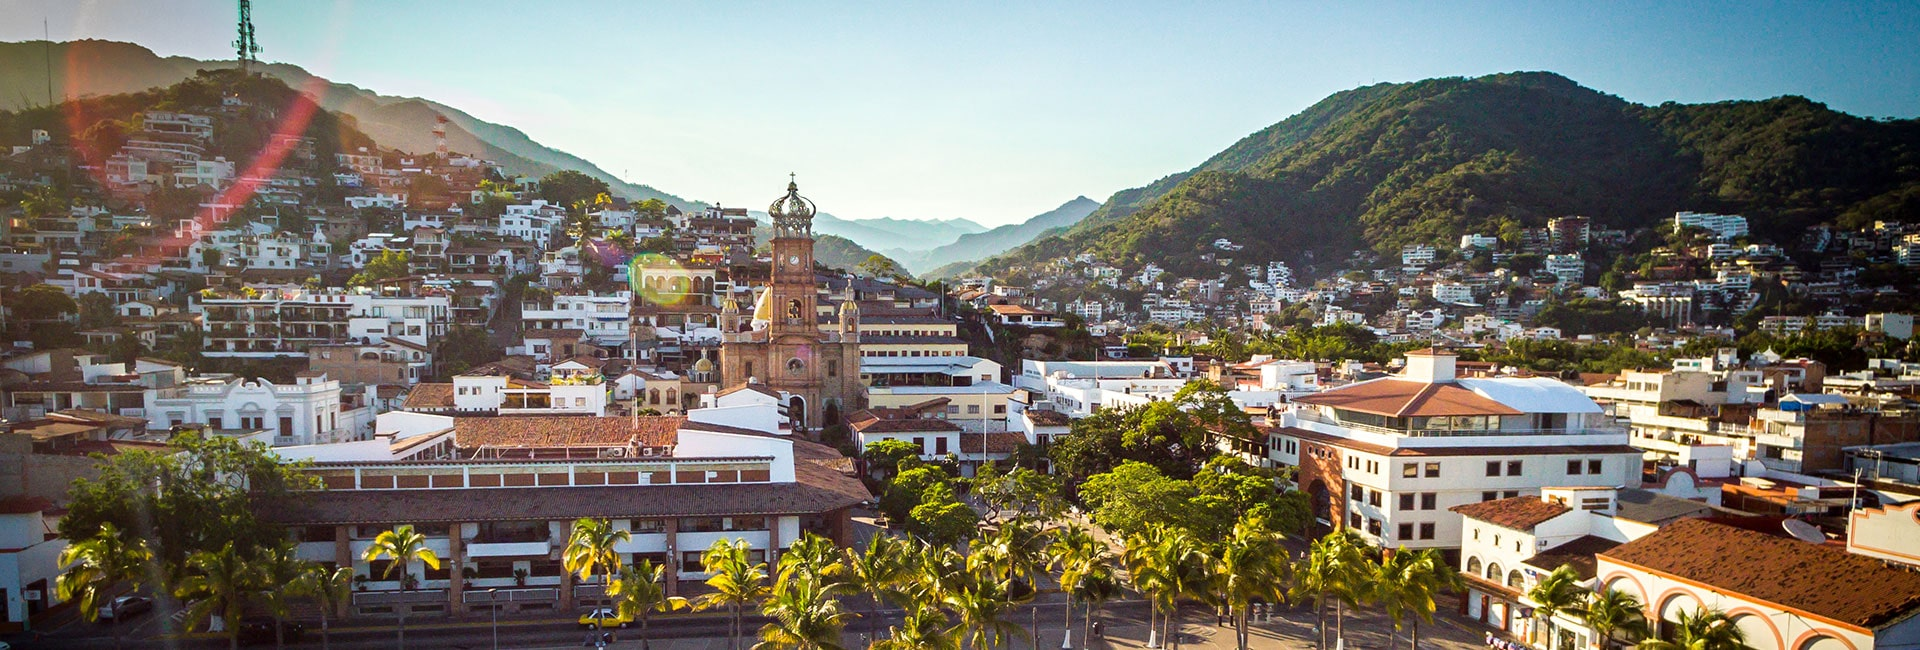 Puerto vallarta mexico travel advisory